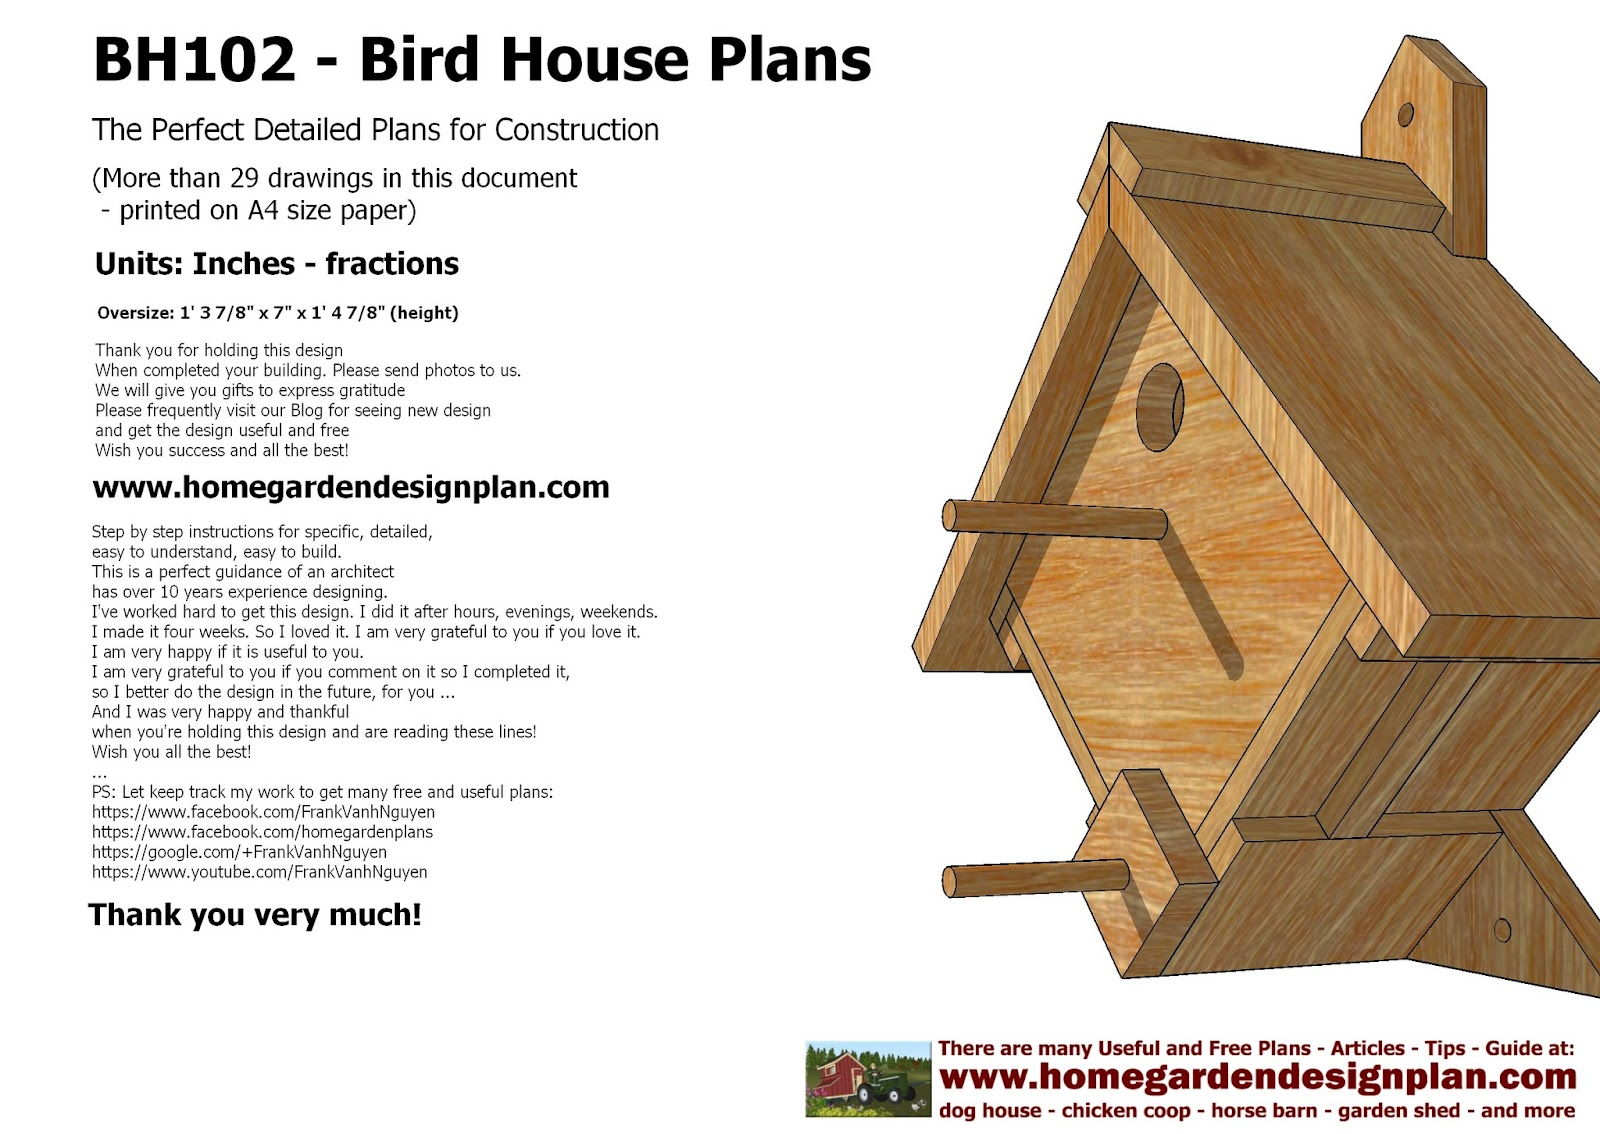 for chick coop home garden plans BH102 Bird House Plans